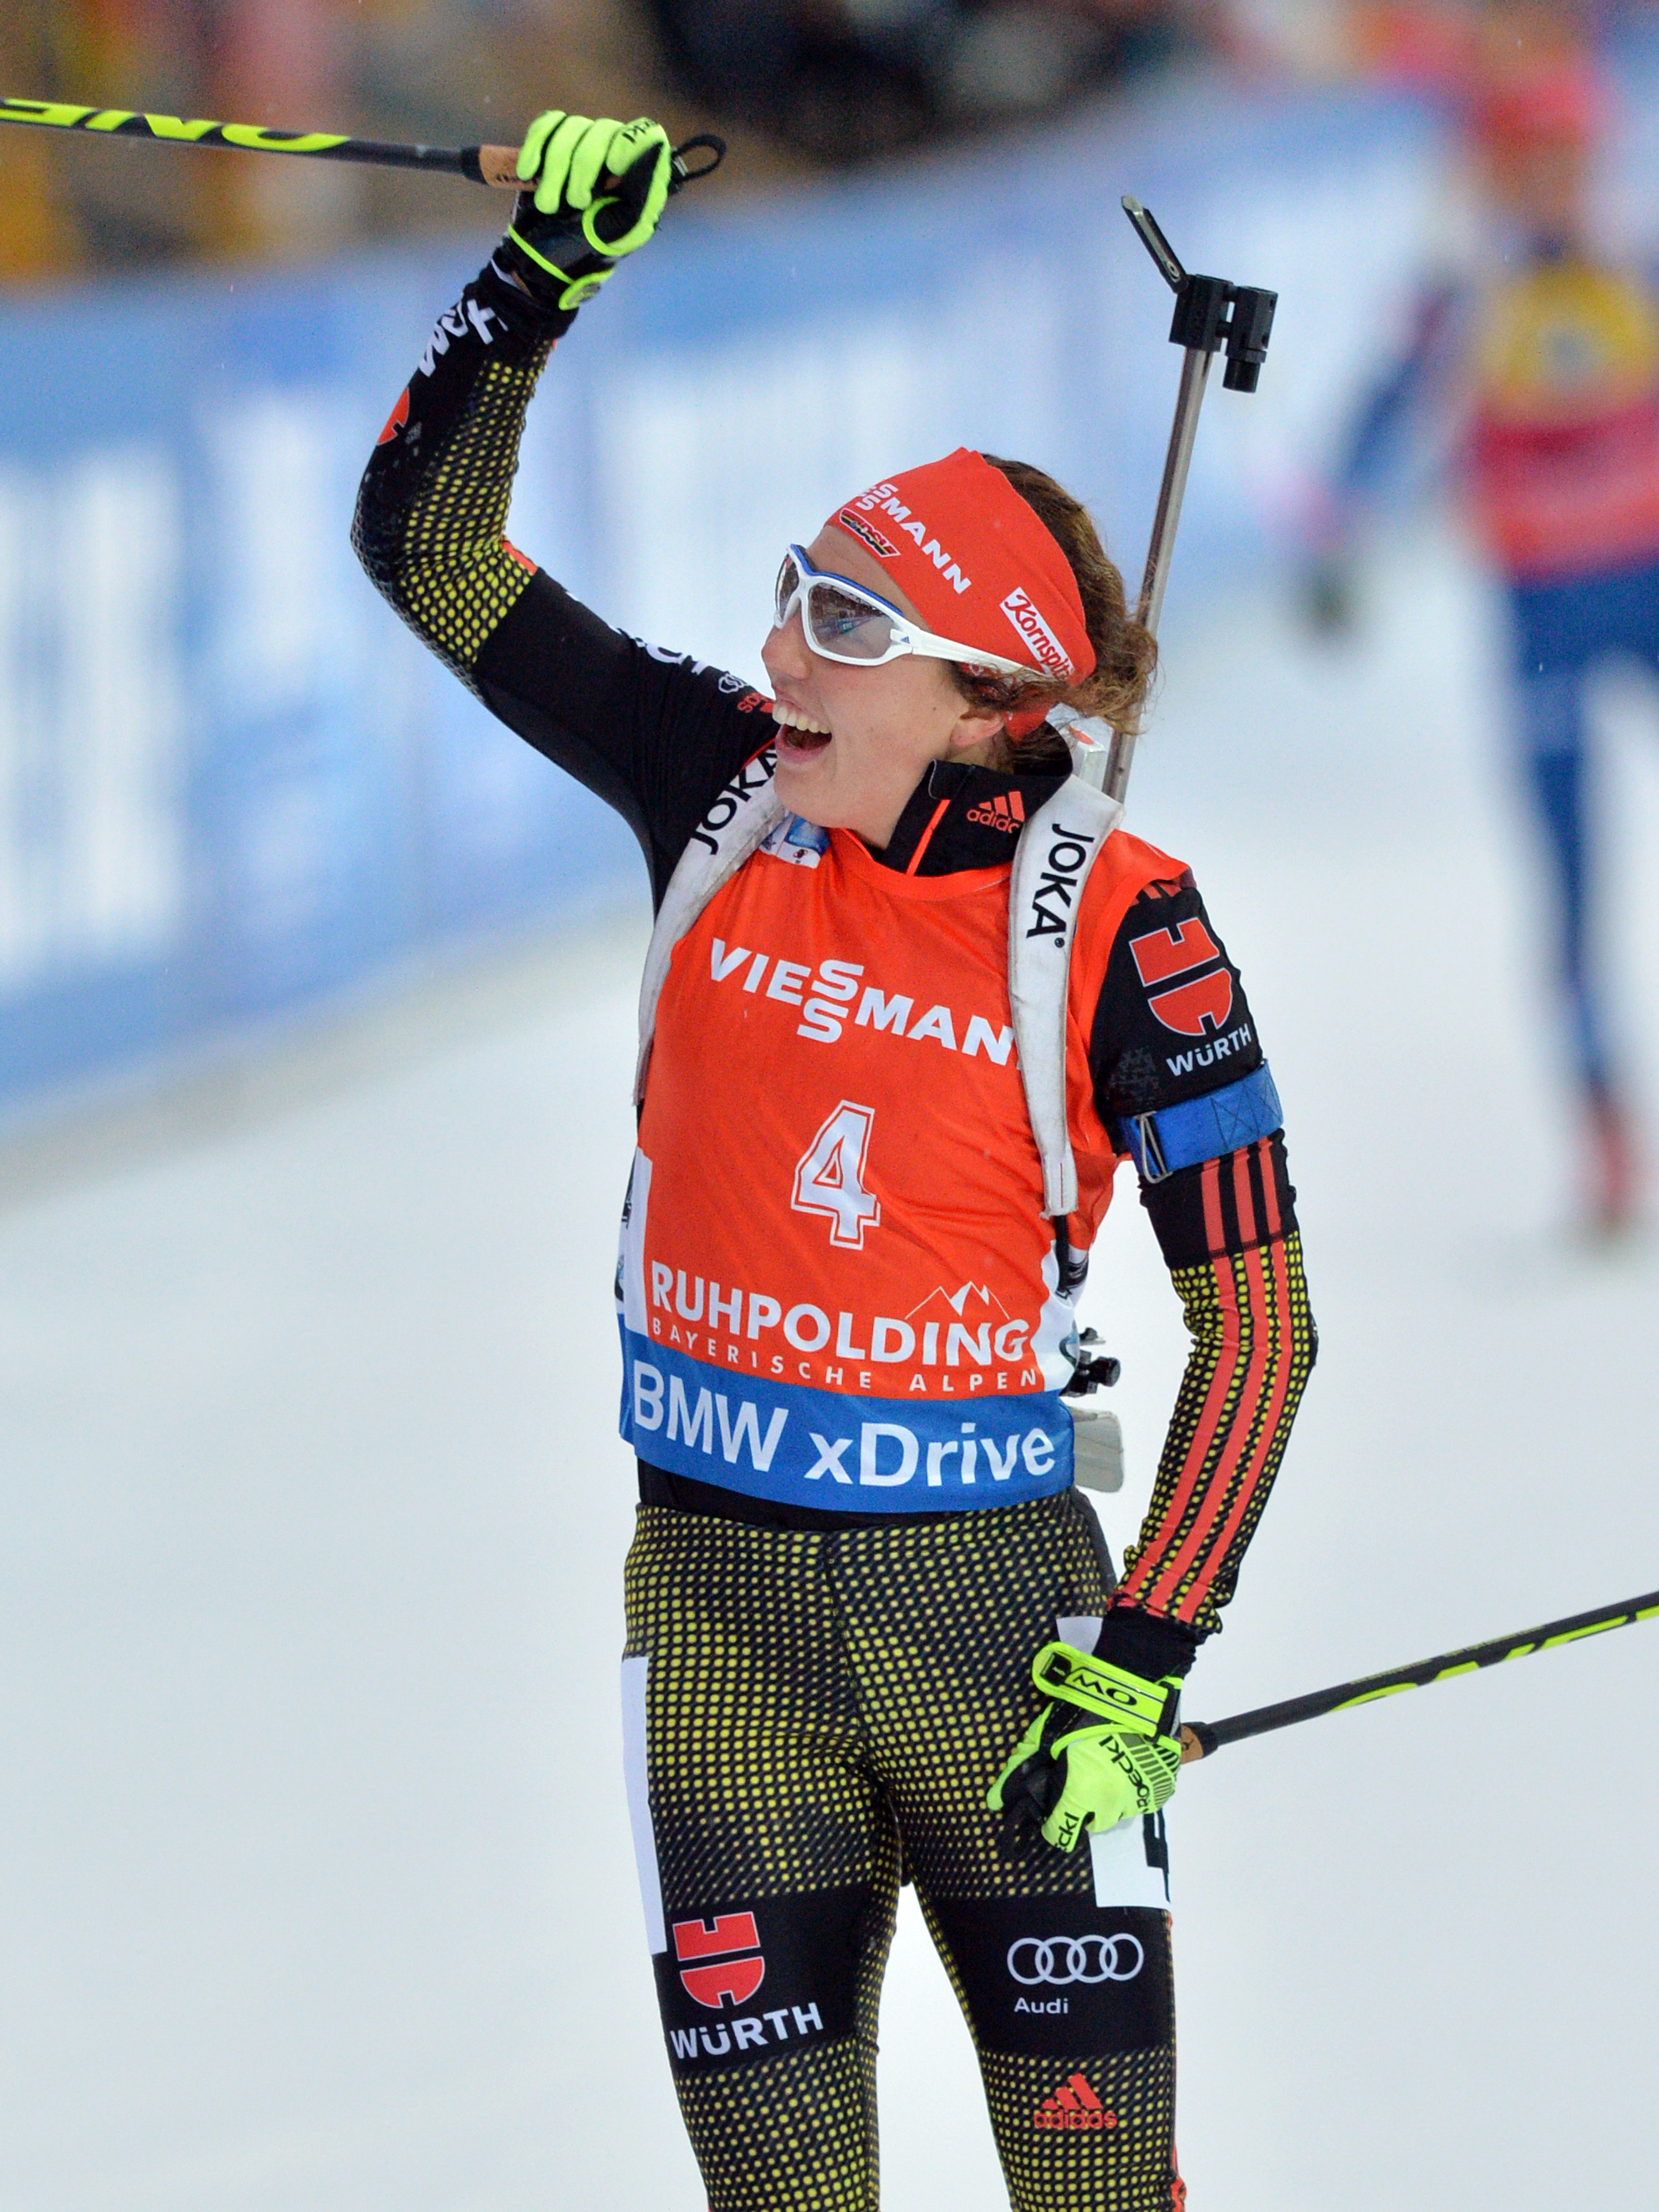 germany_biathlon_world_cup_-5bd1485ac14c_r7342.jpeg